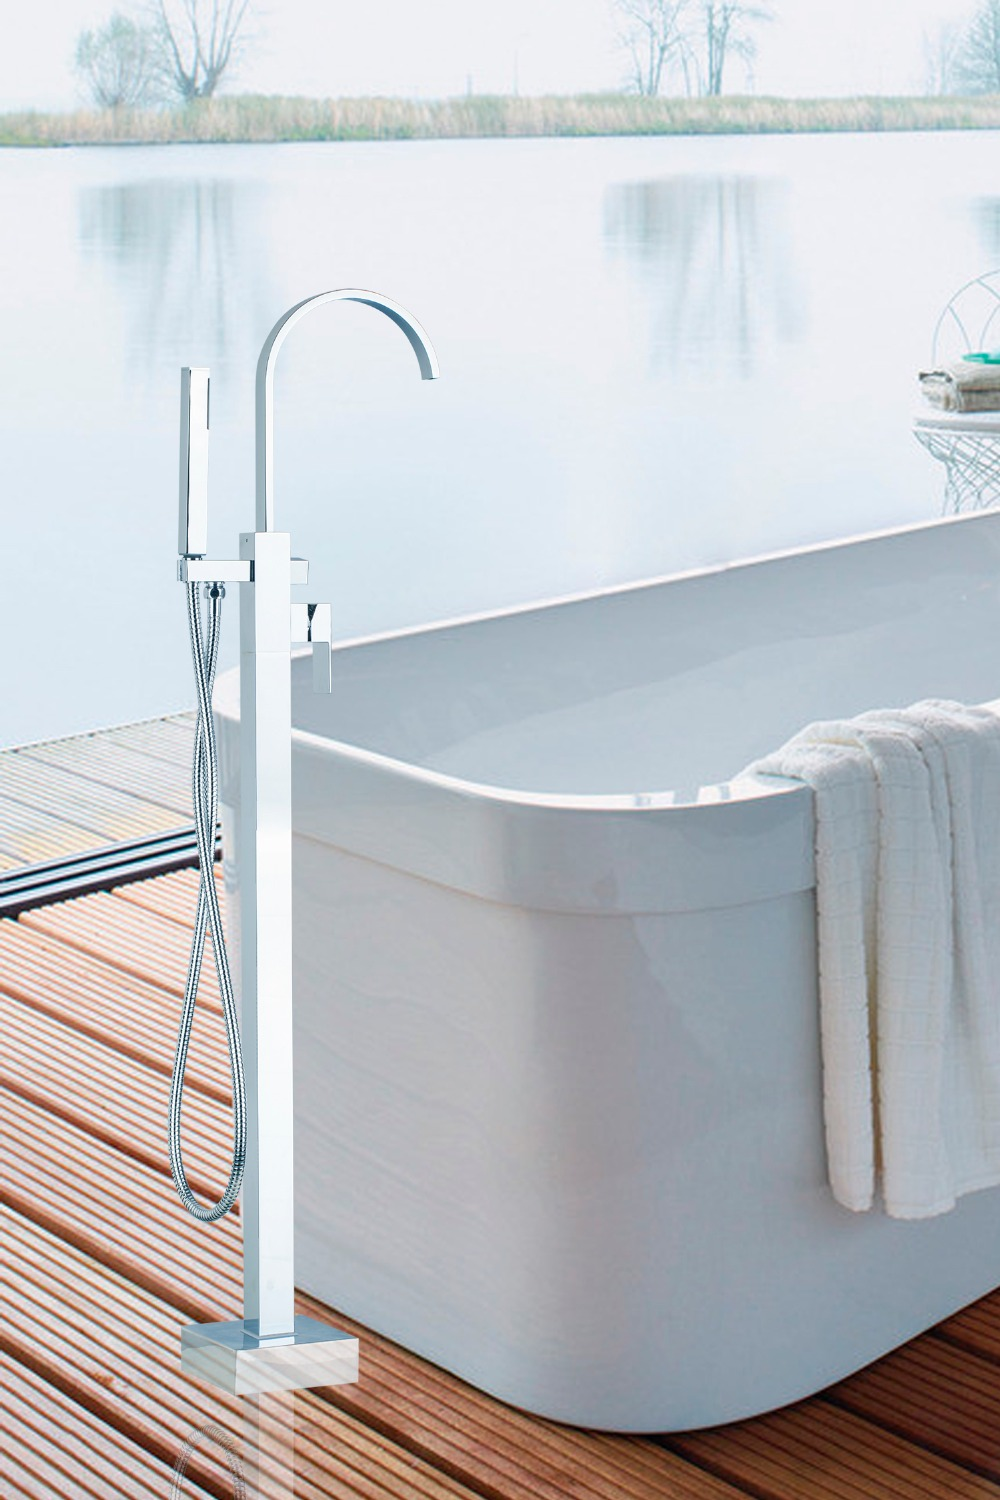 OUBONI Floor Mounted Tub Filler Faucet with Hand Shower Chrome ...